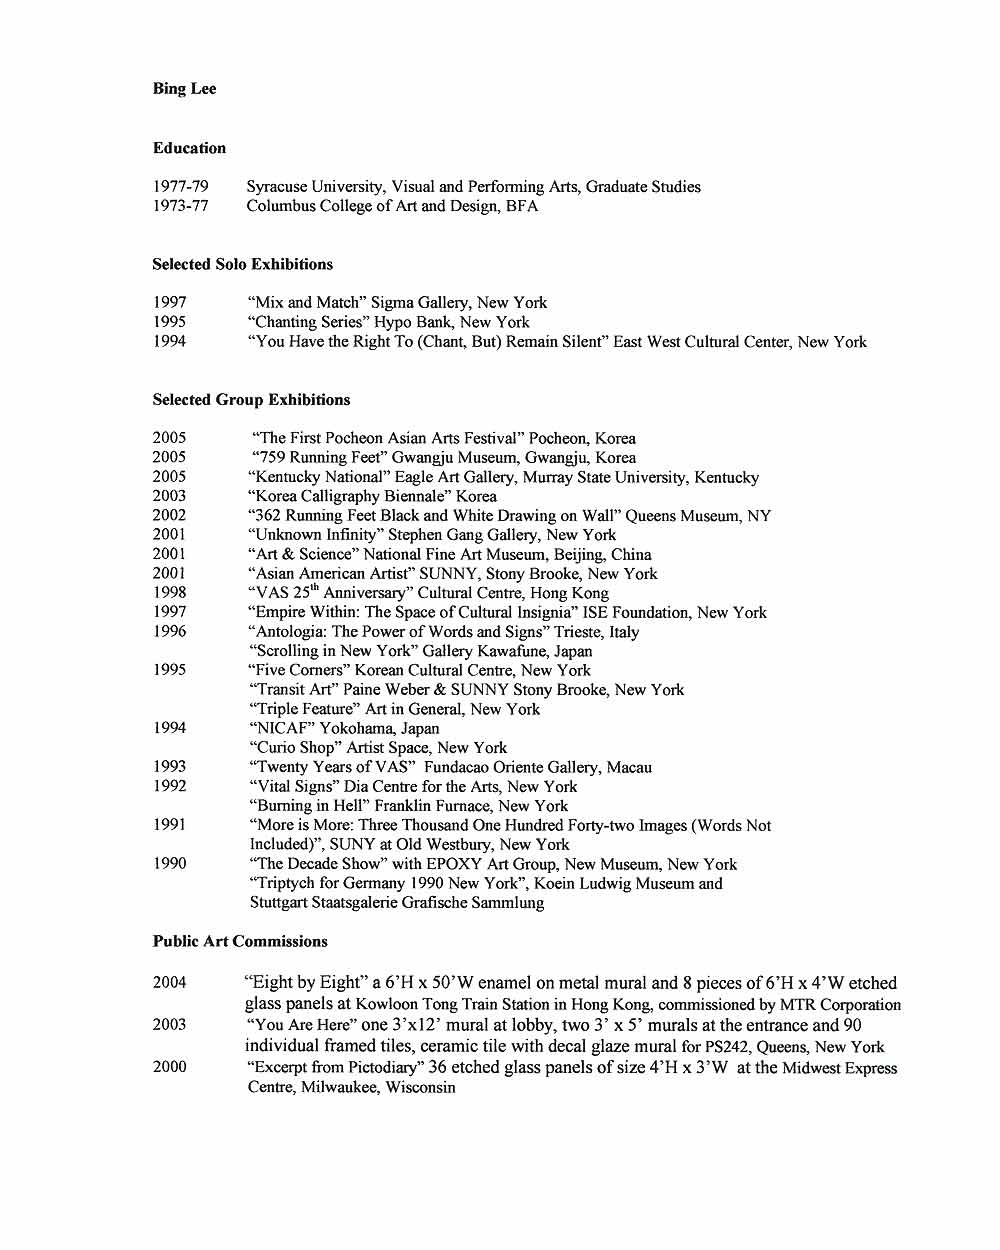 Bing Lee's Resume, pg 1